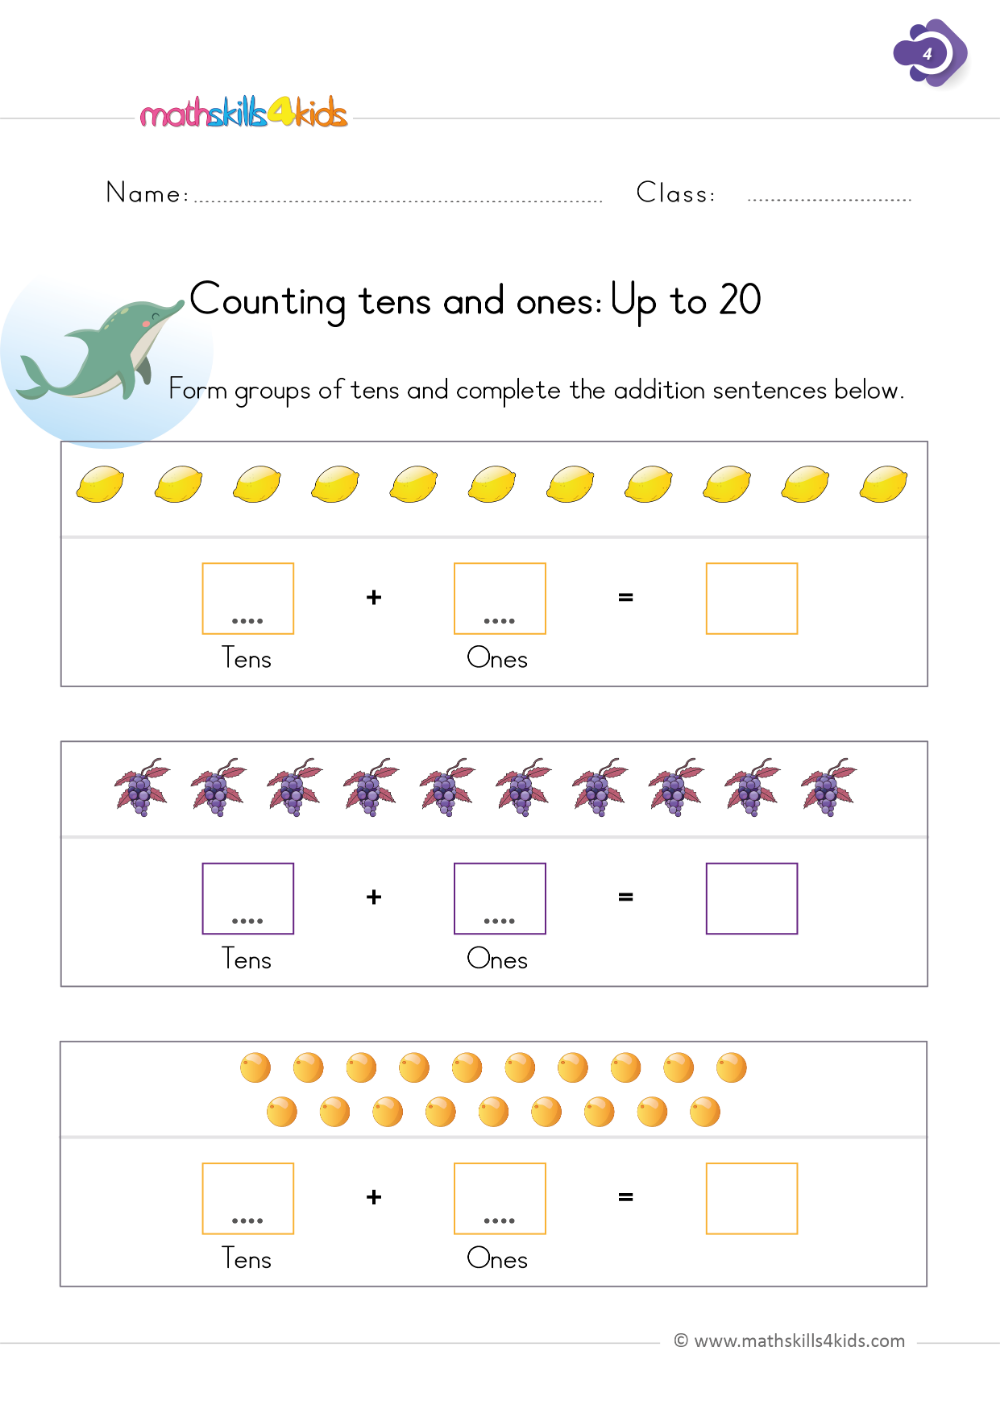 Counting tens and ones - First Grade Math Worksheets   1st grade worksheets [ 1413 x 1000 Pixel ]